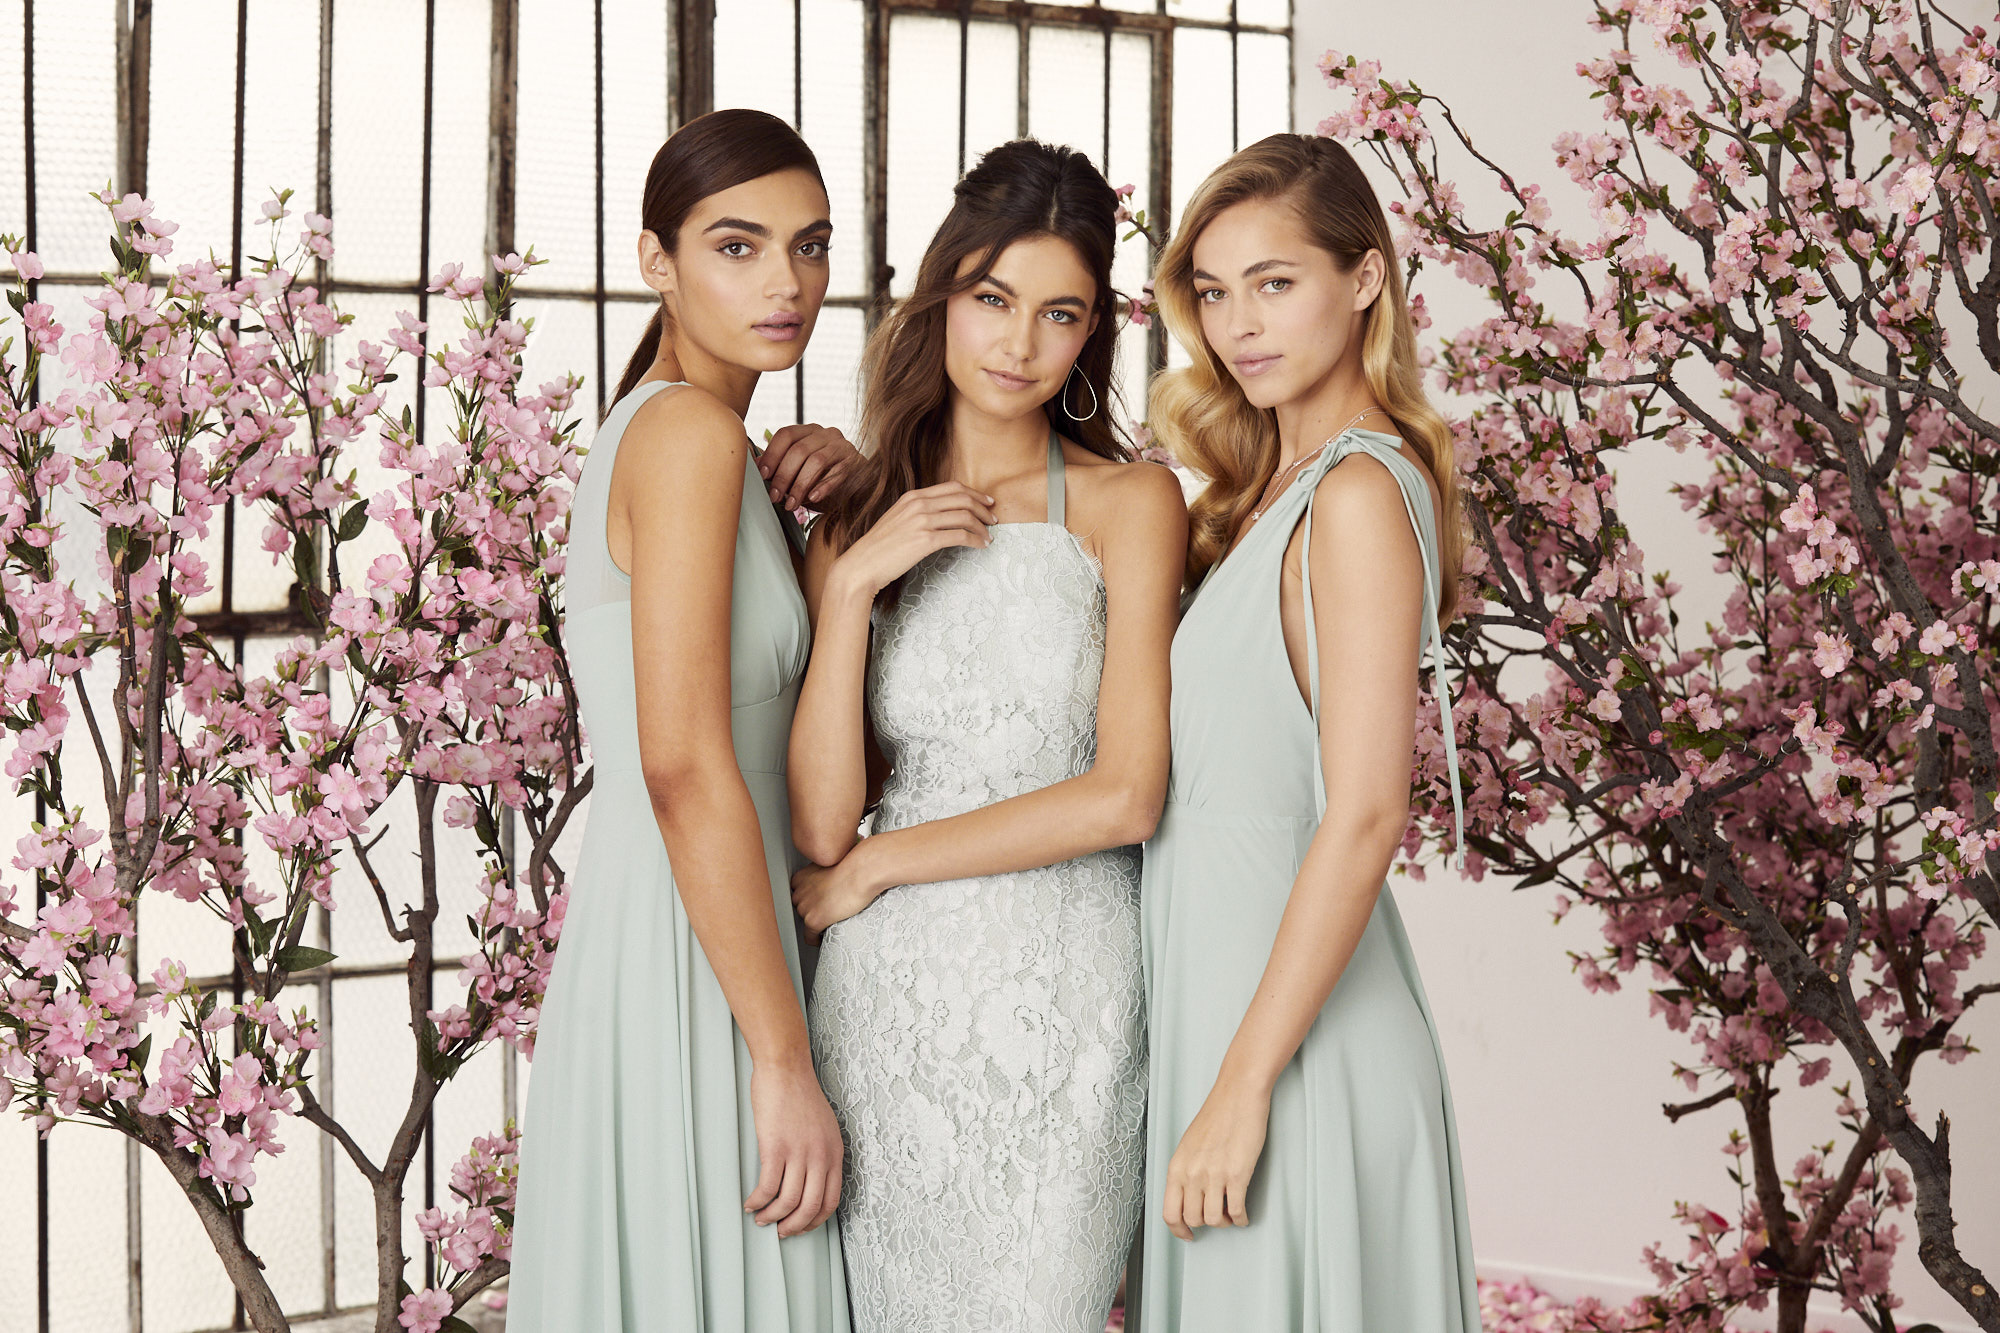 f2d57b1ca3e3 Mismatched Bridesmaid Dresses: 8 Ways to Nail the Look - Lulus.com ...